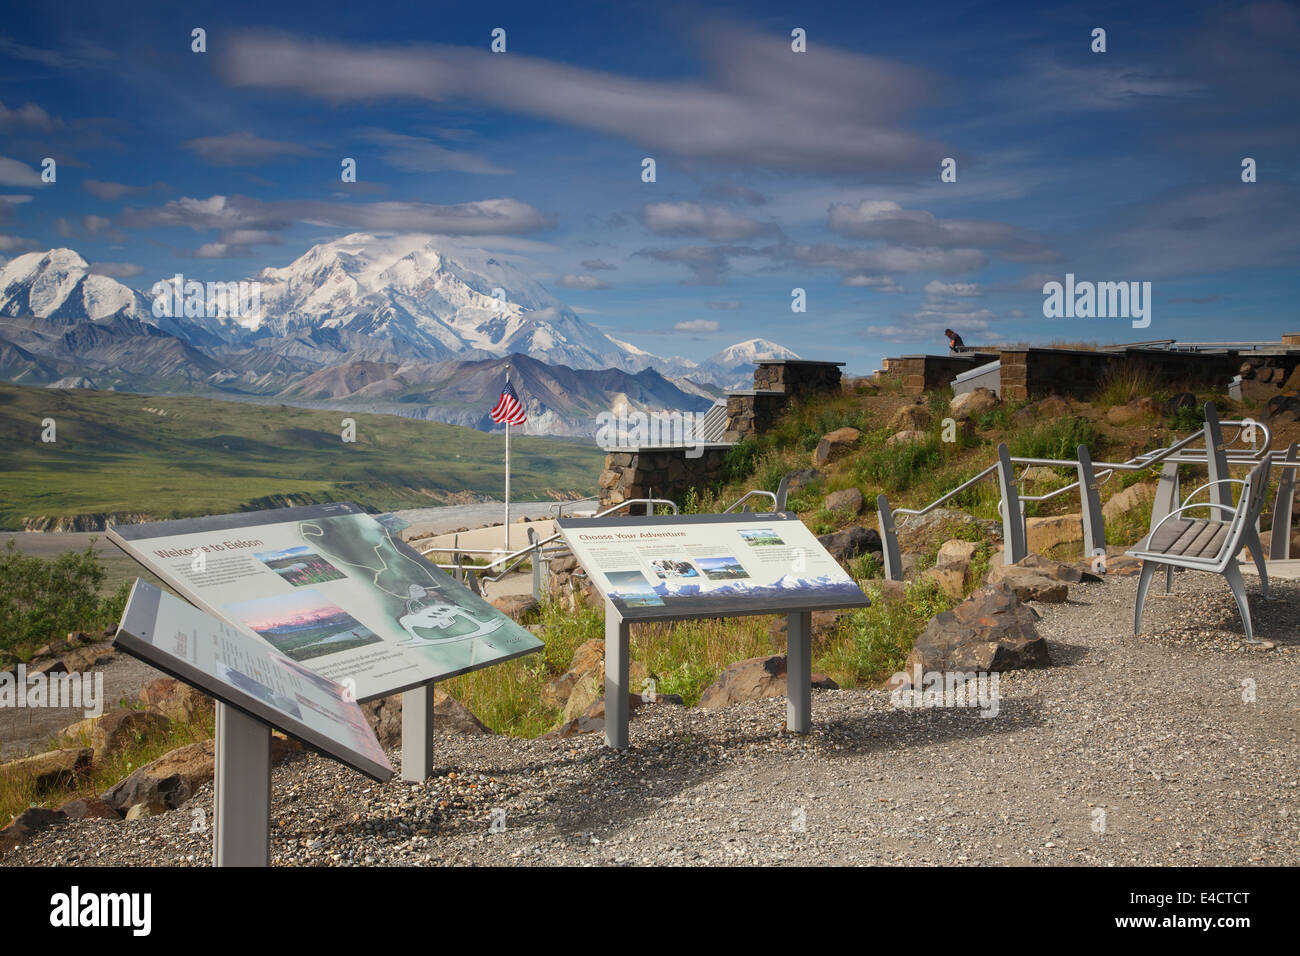 Mt McKinley also known as Denali, from the Eielson Visitor Center, Denali National Park, Alaska. - Stock Image